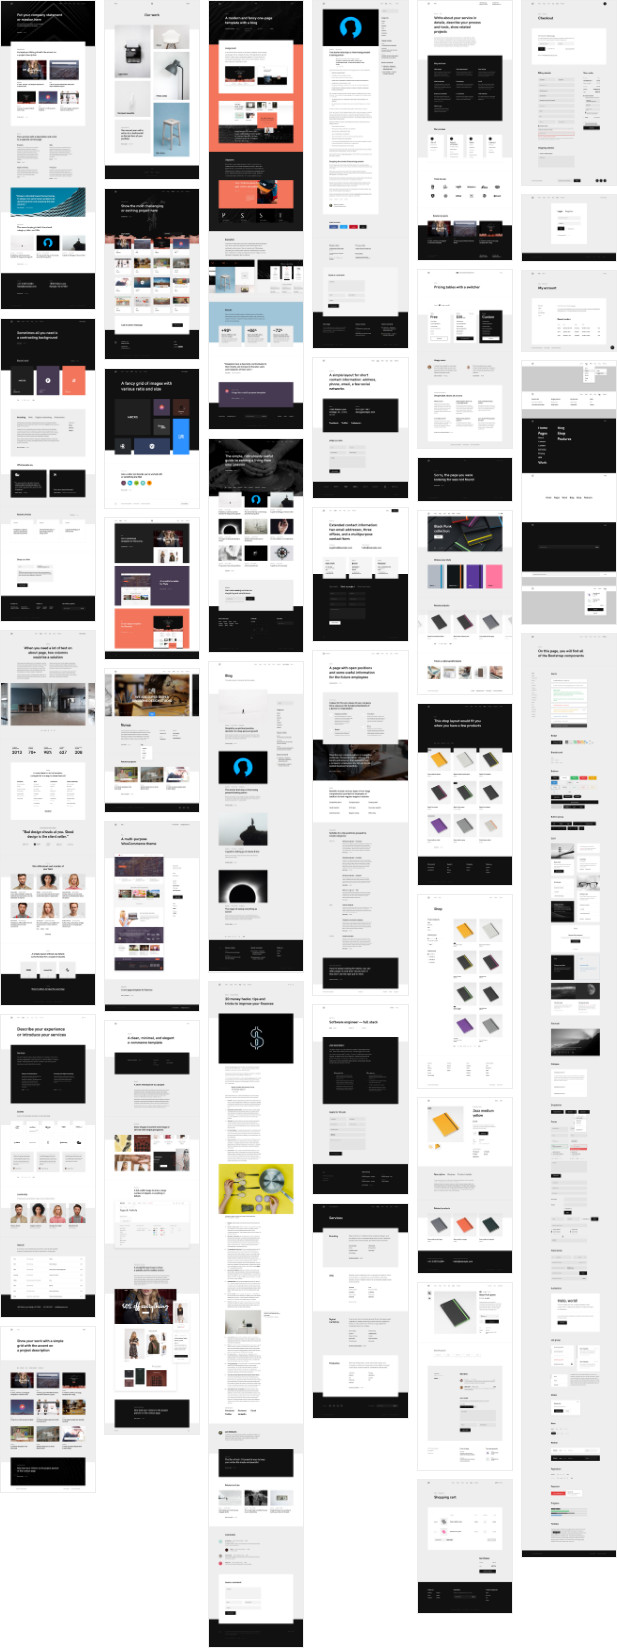 All essential pages plus WooCommerce shop